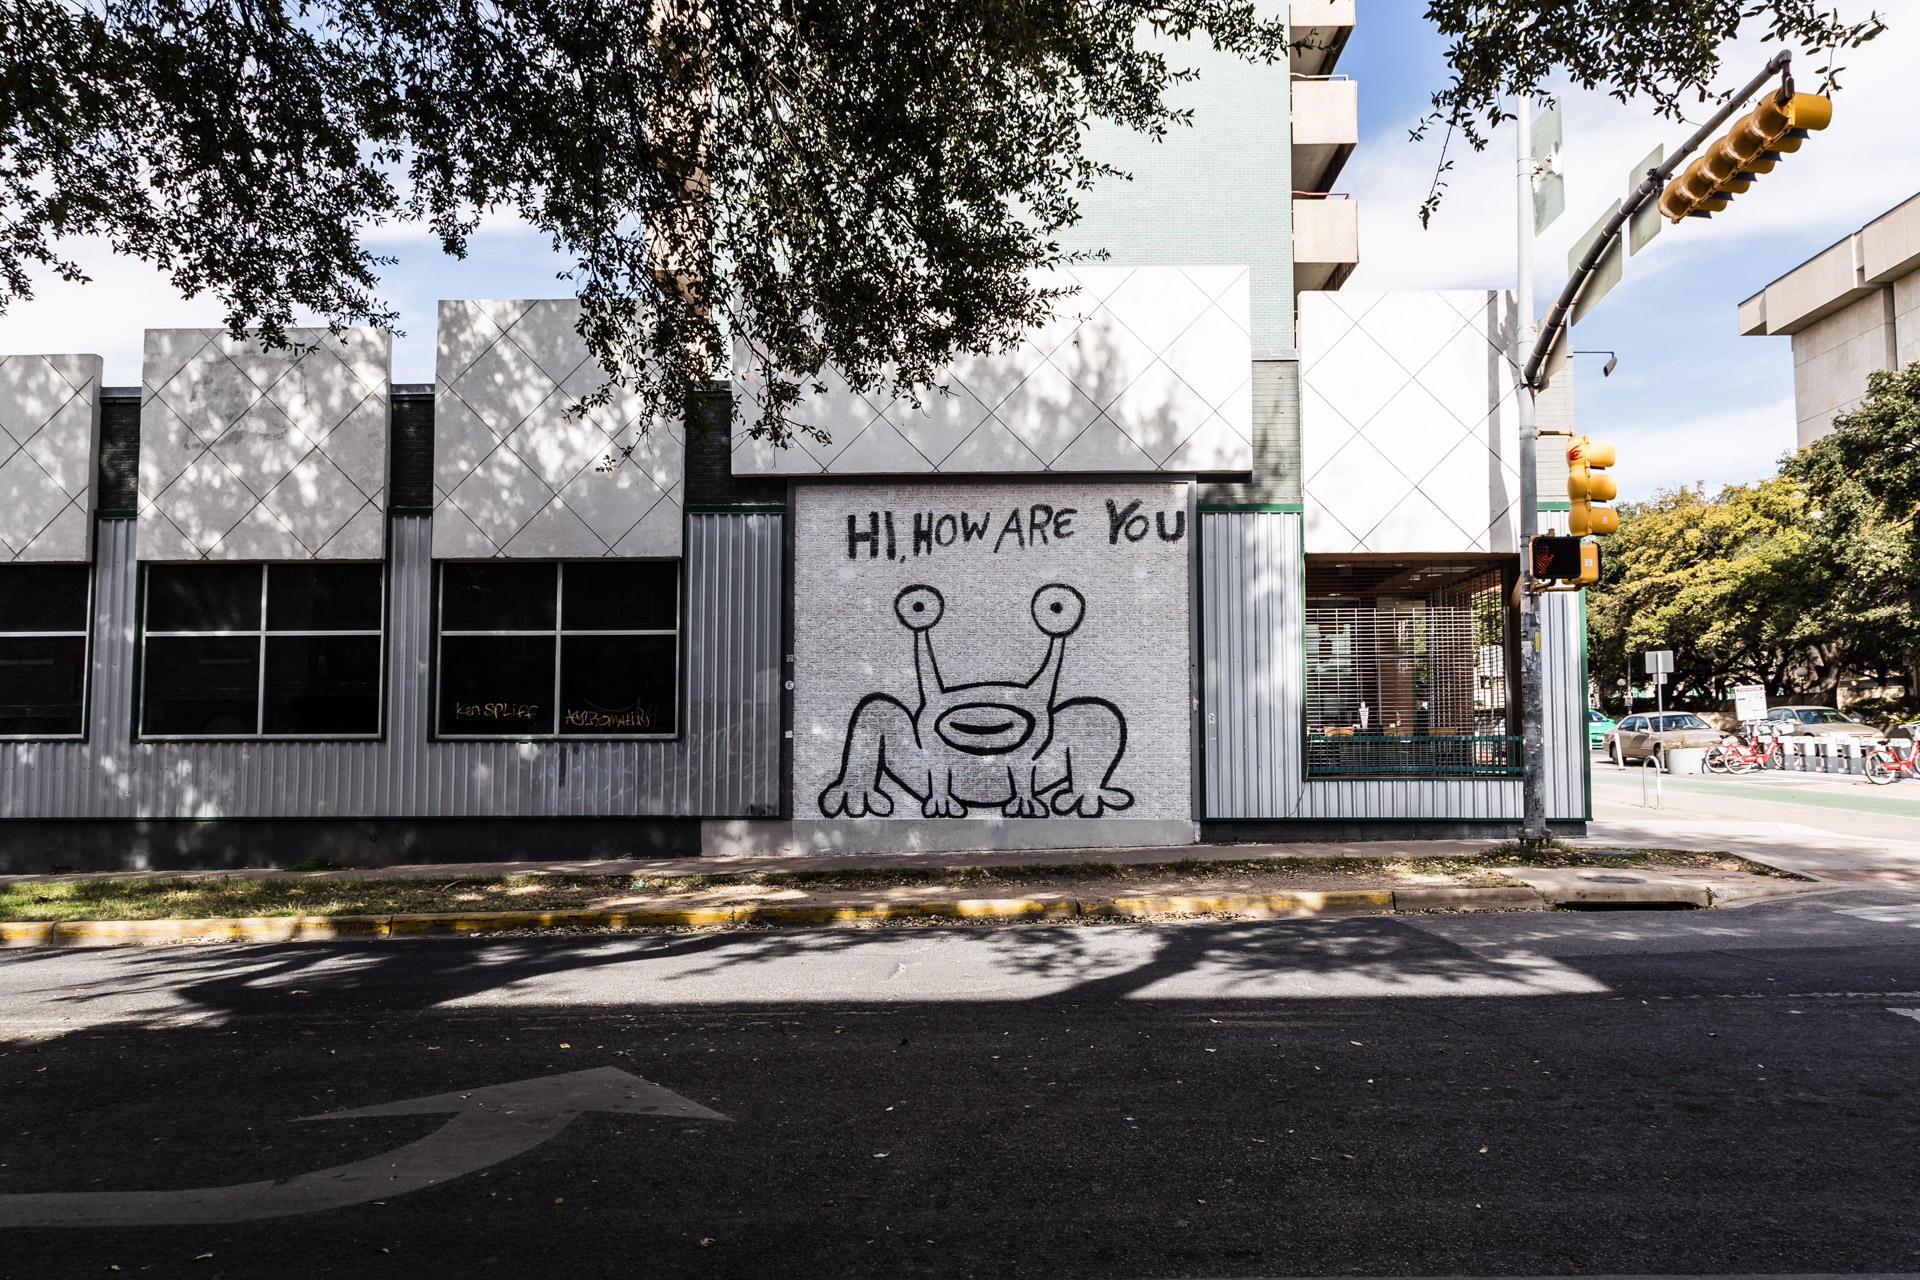 Austin Street Art (how are you)